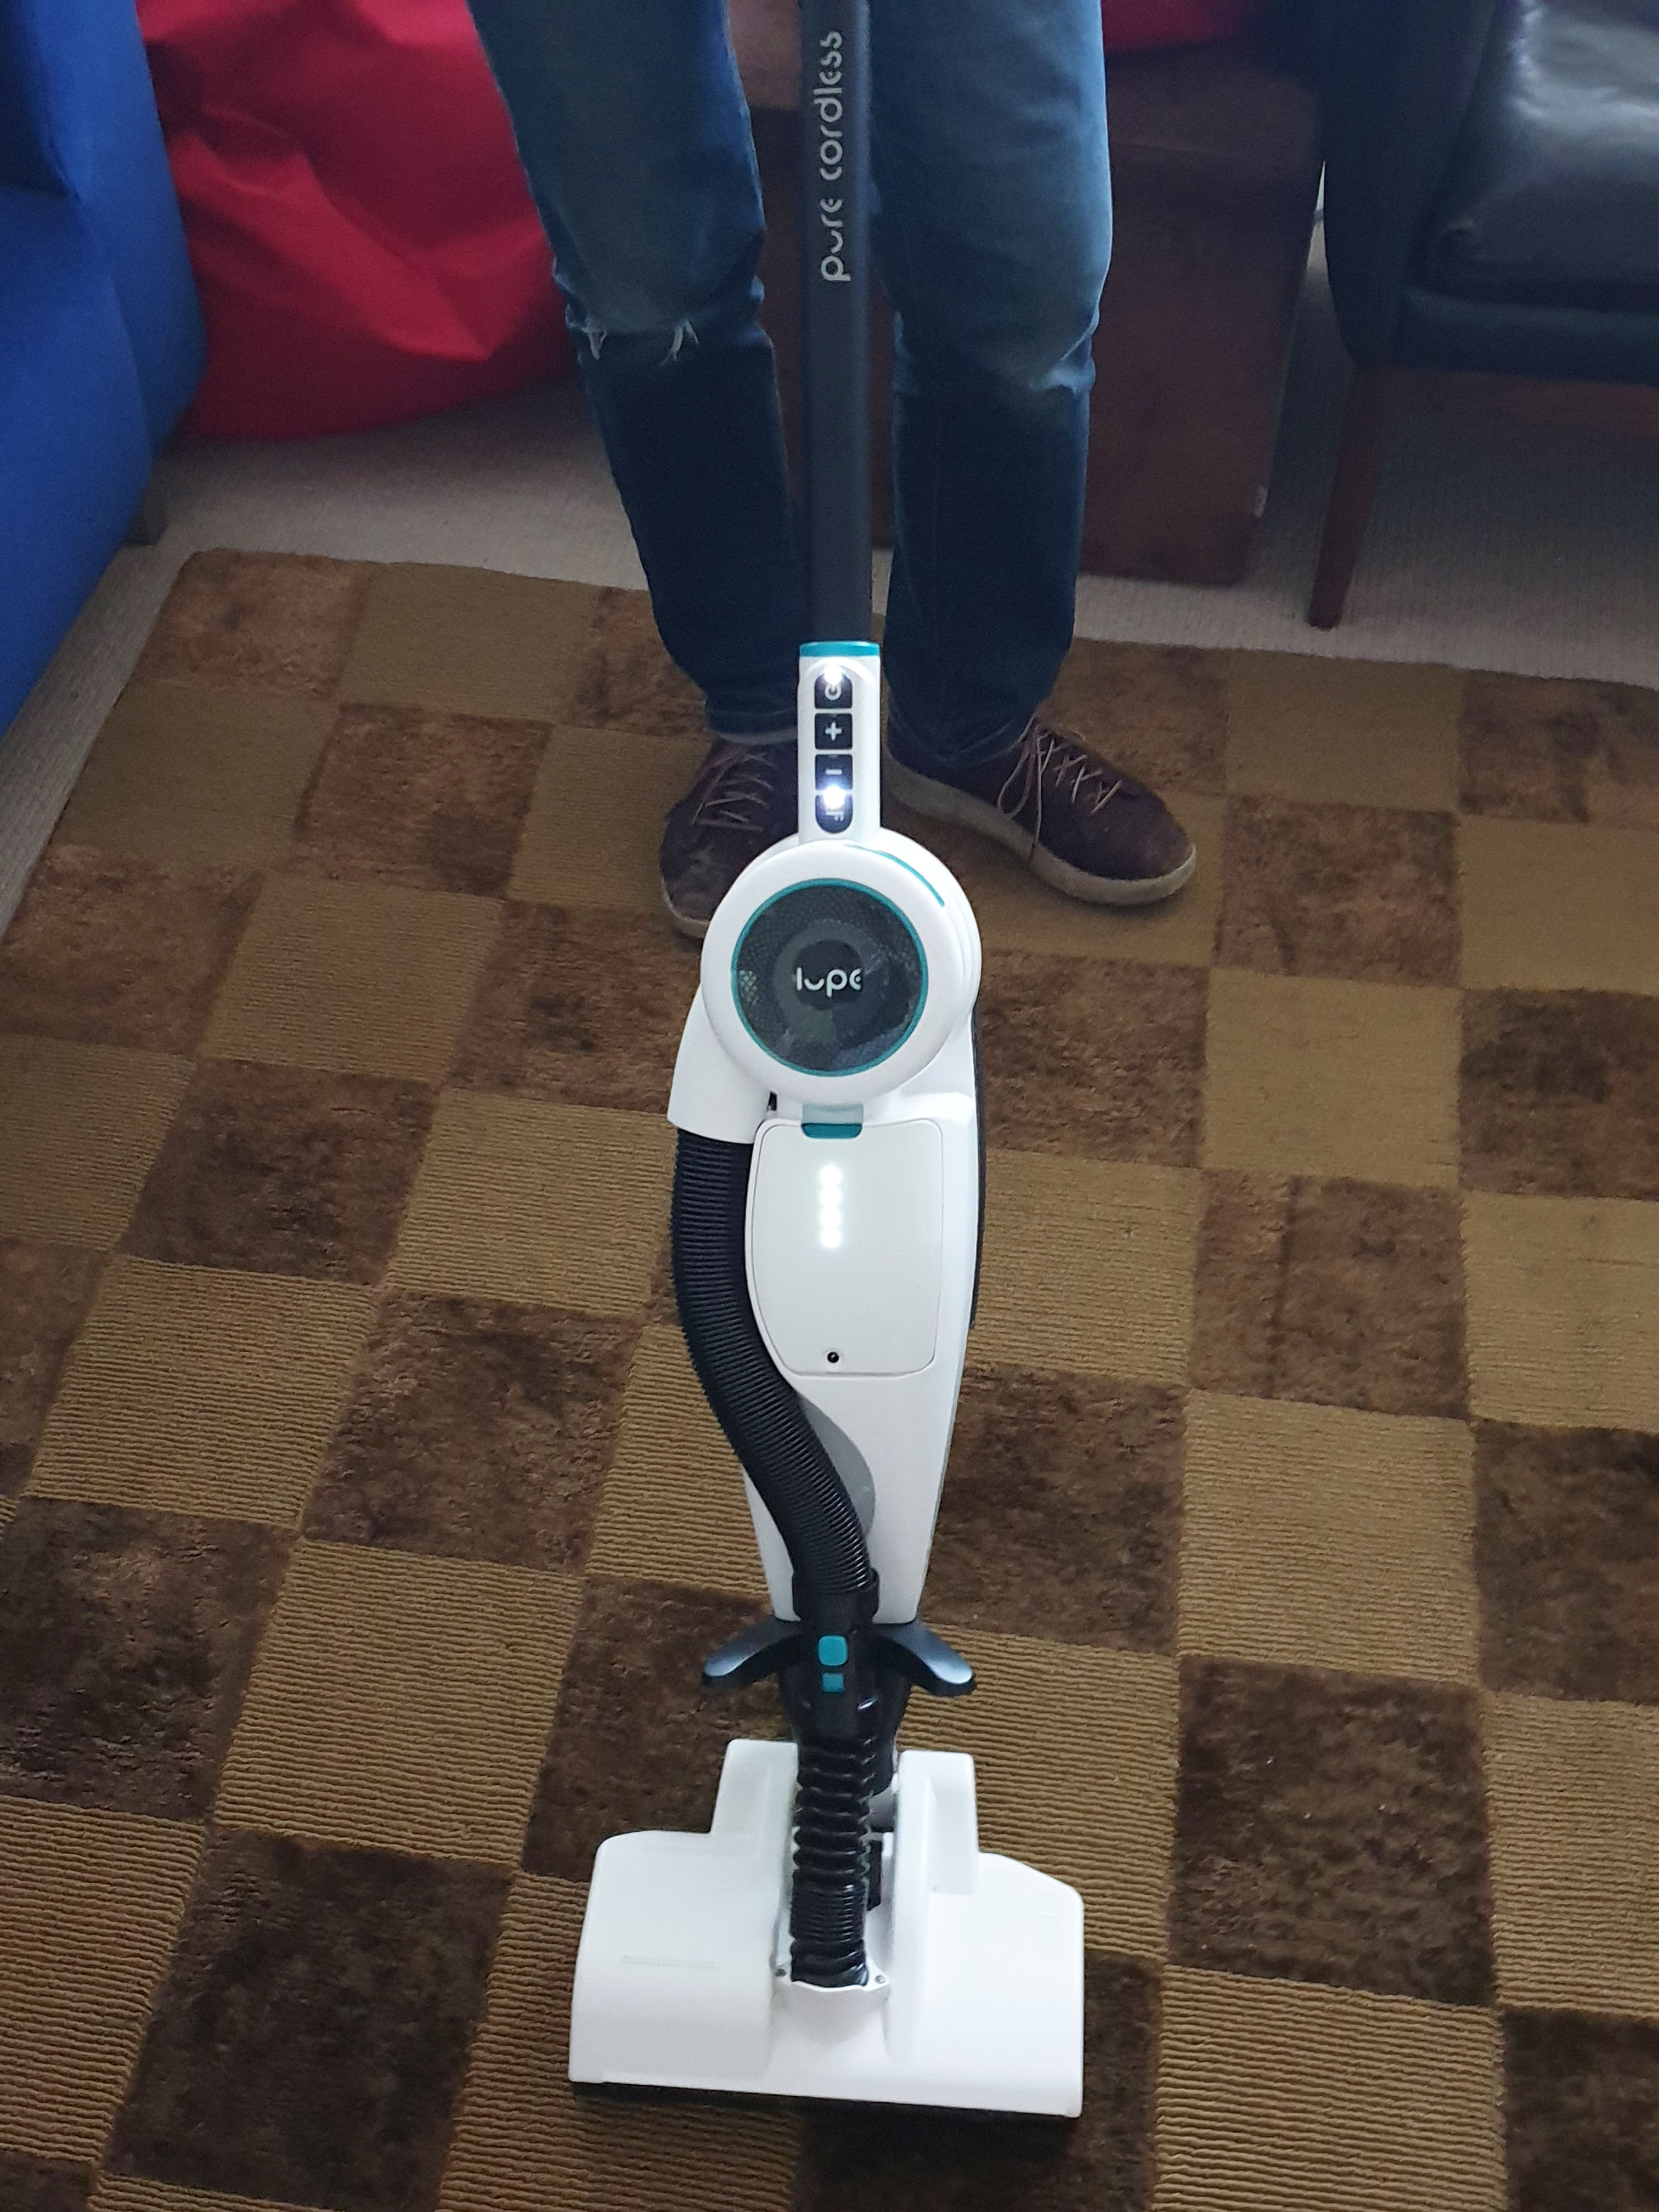 Makes floor vacuuming very quick and easy